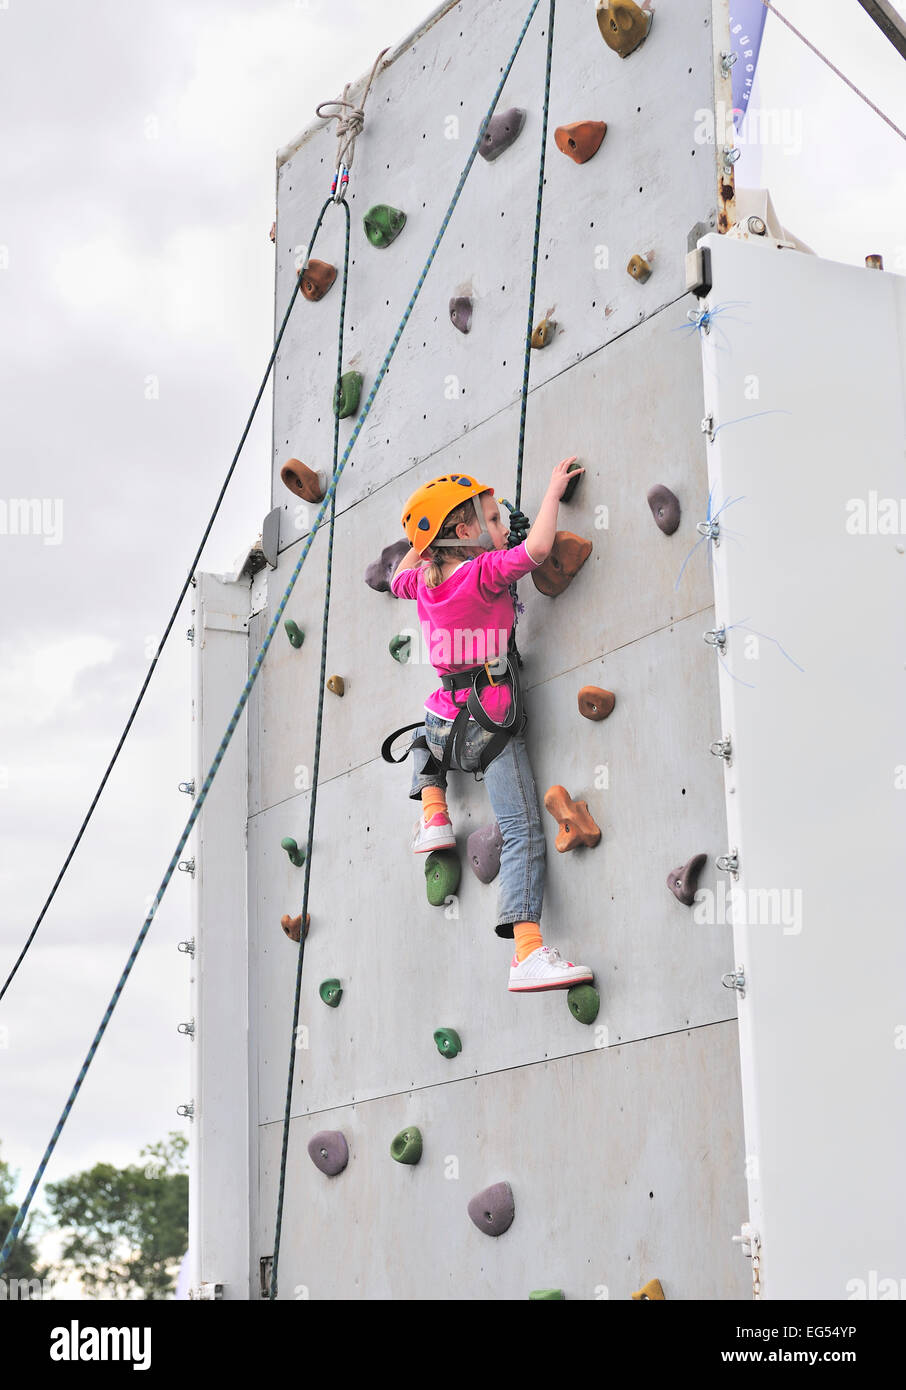 Young girl with safety harness climbing a wall - Stock Image